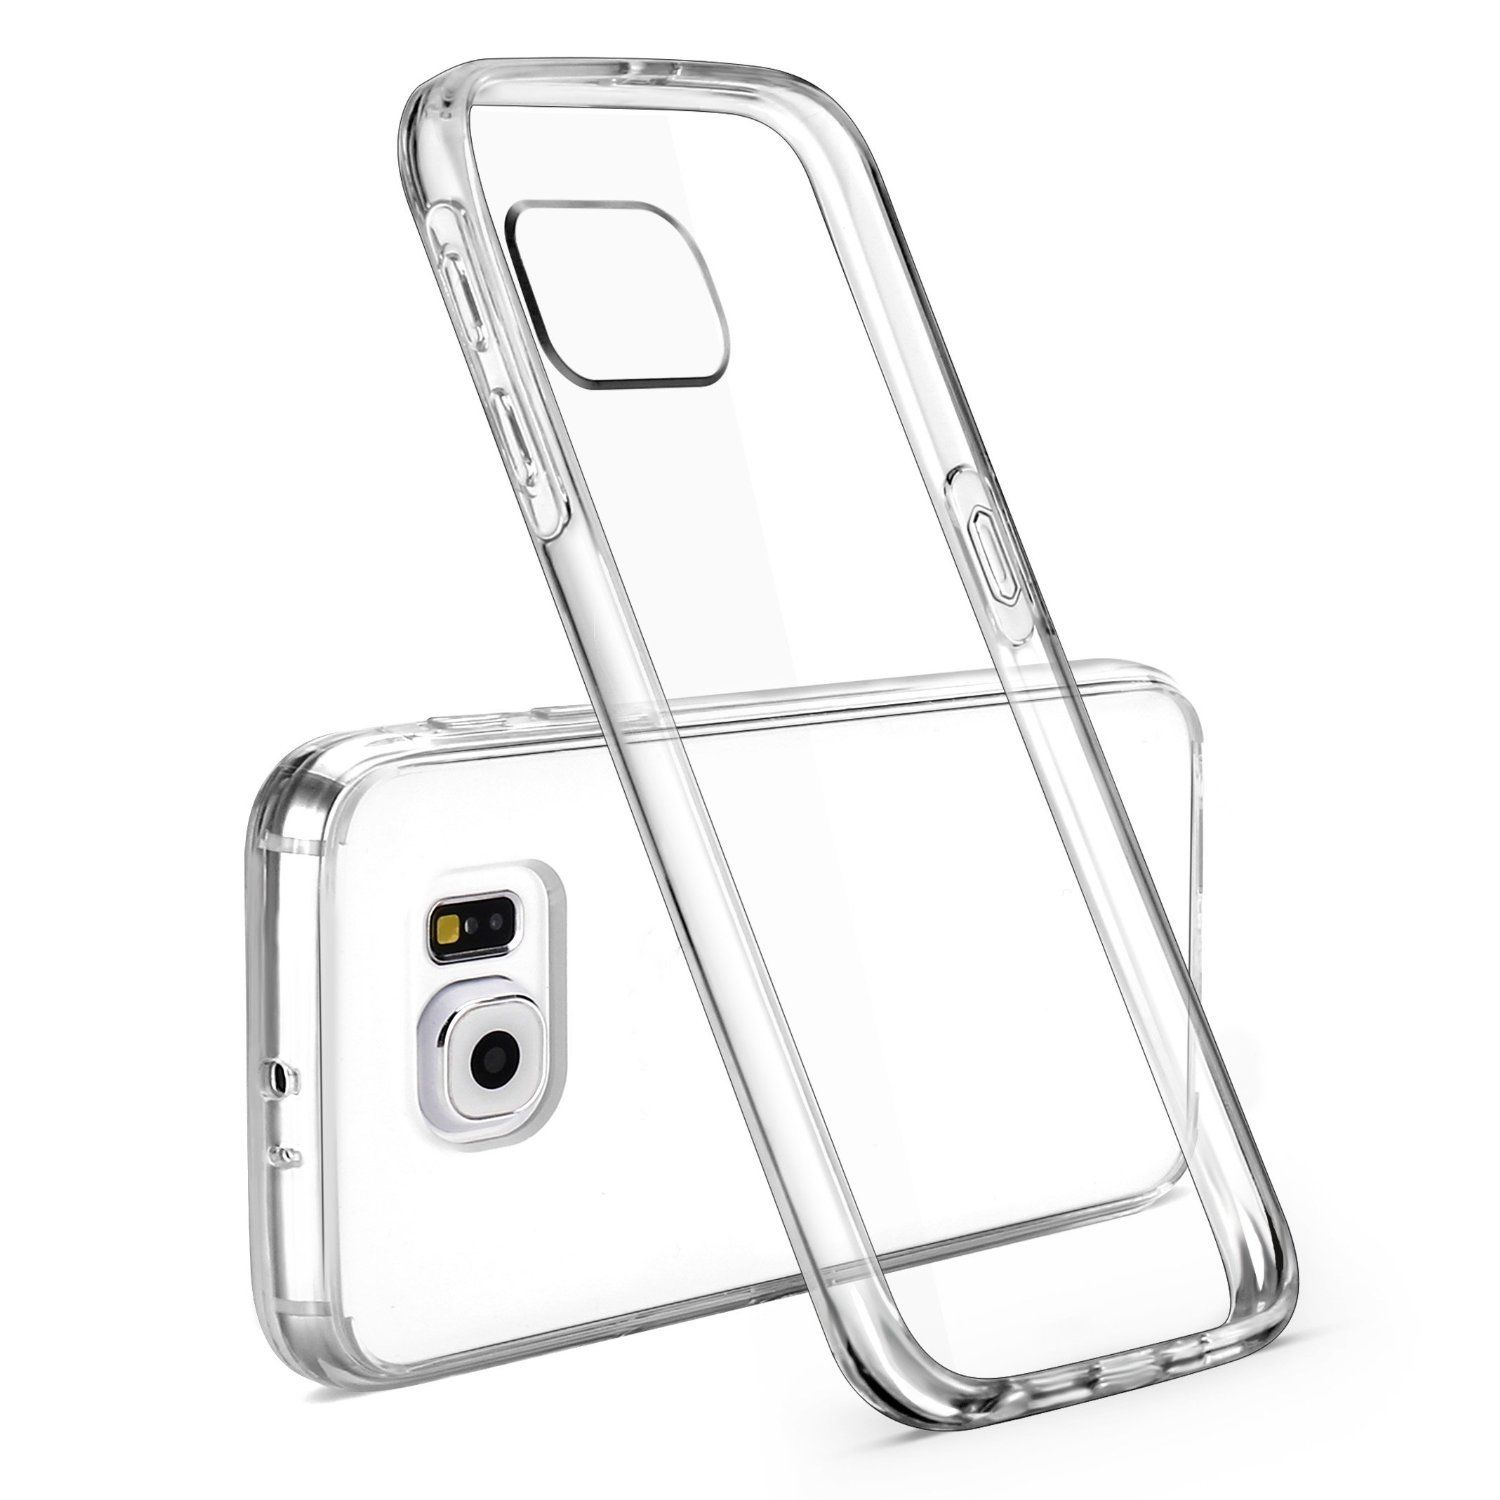 Ultra Thin Slim Crystal Clear Soft Tpu Back Cover